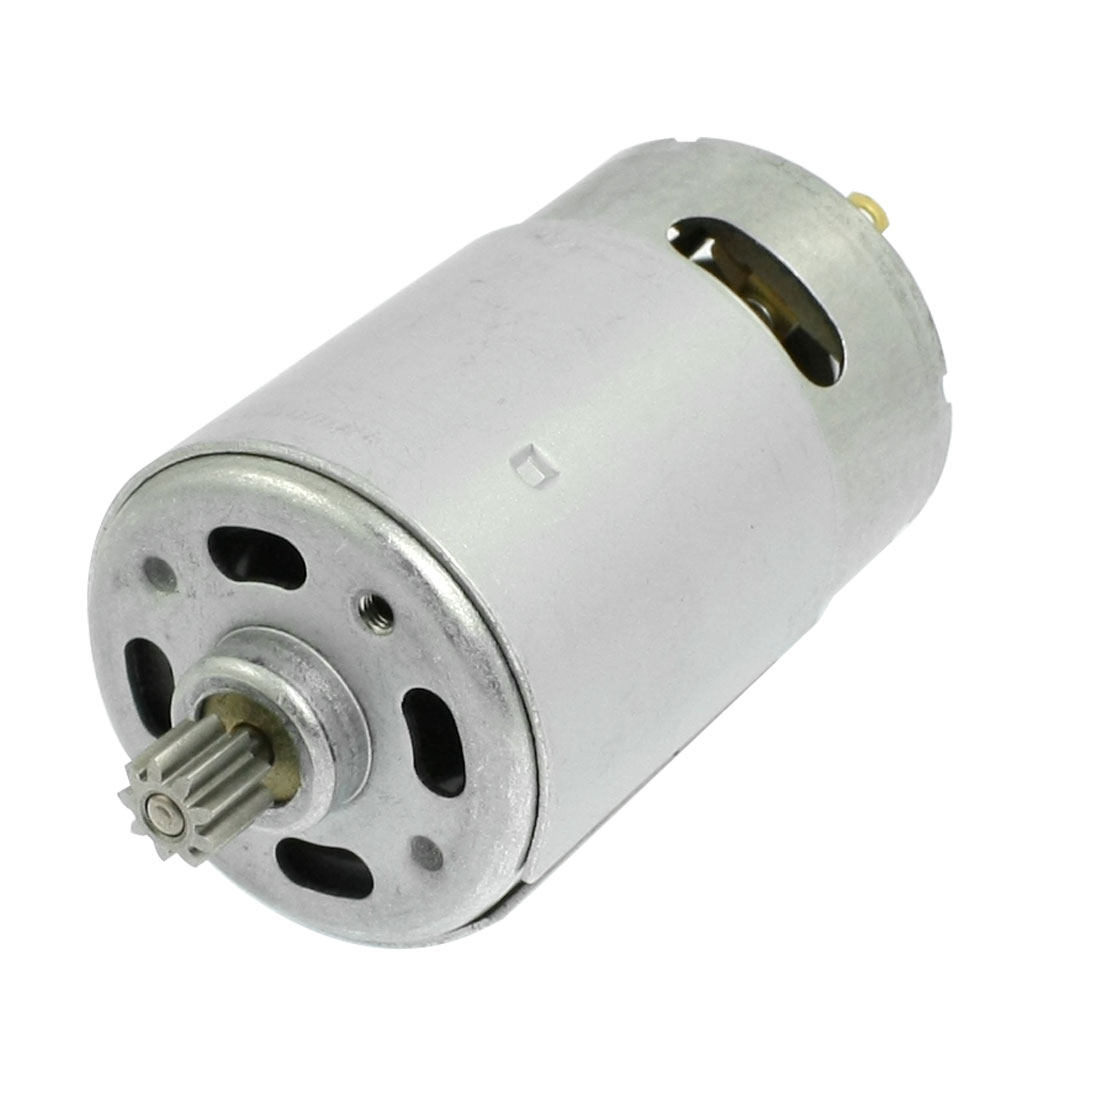 DC 18V 9 Teeth Shank Gear Motor Replacement for Rechargeable Electric Drill